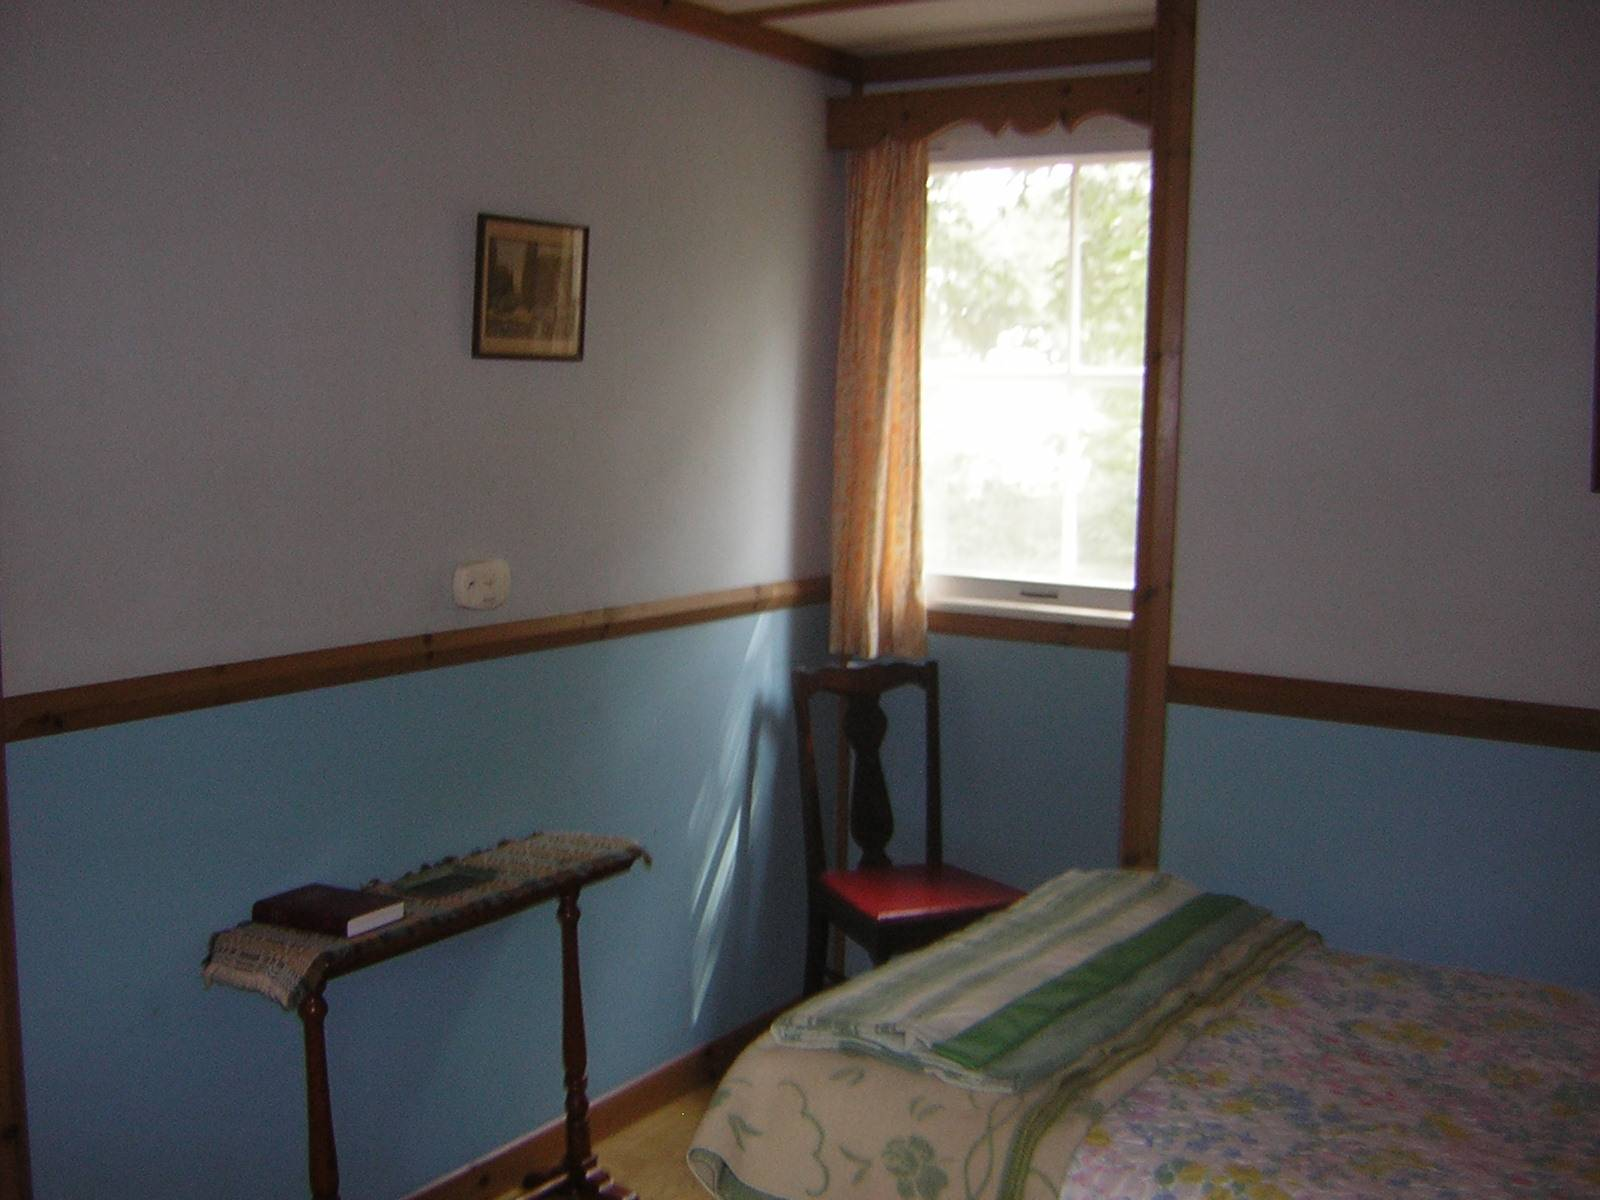 Bedroom - South East